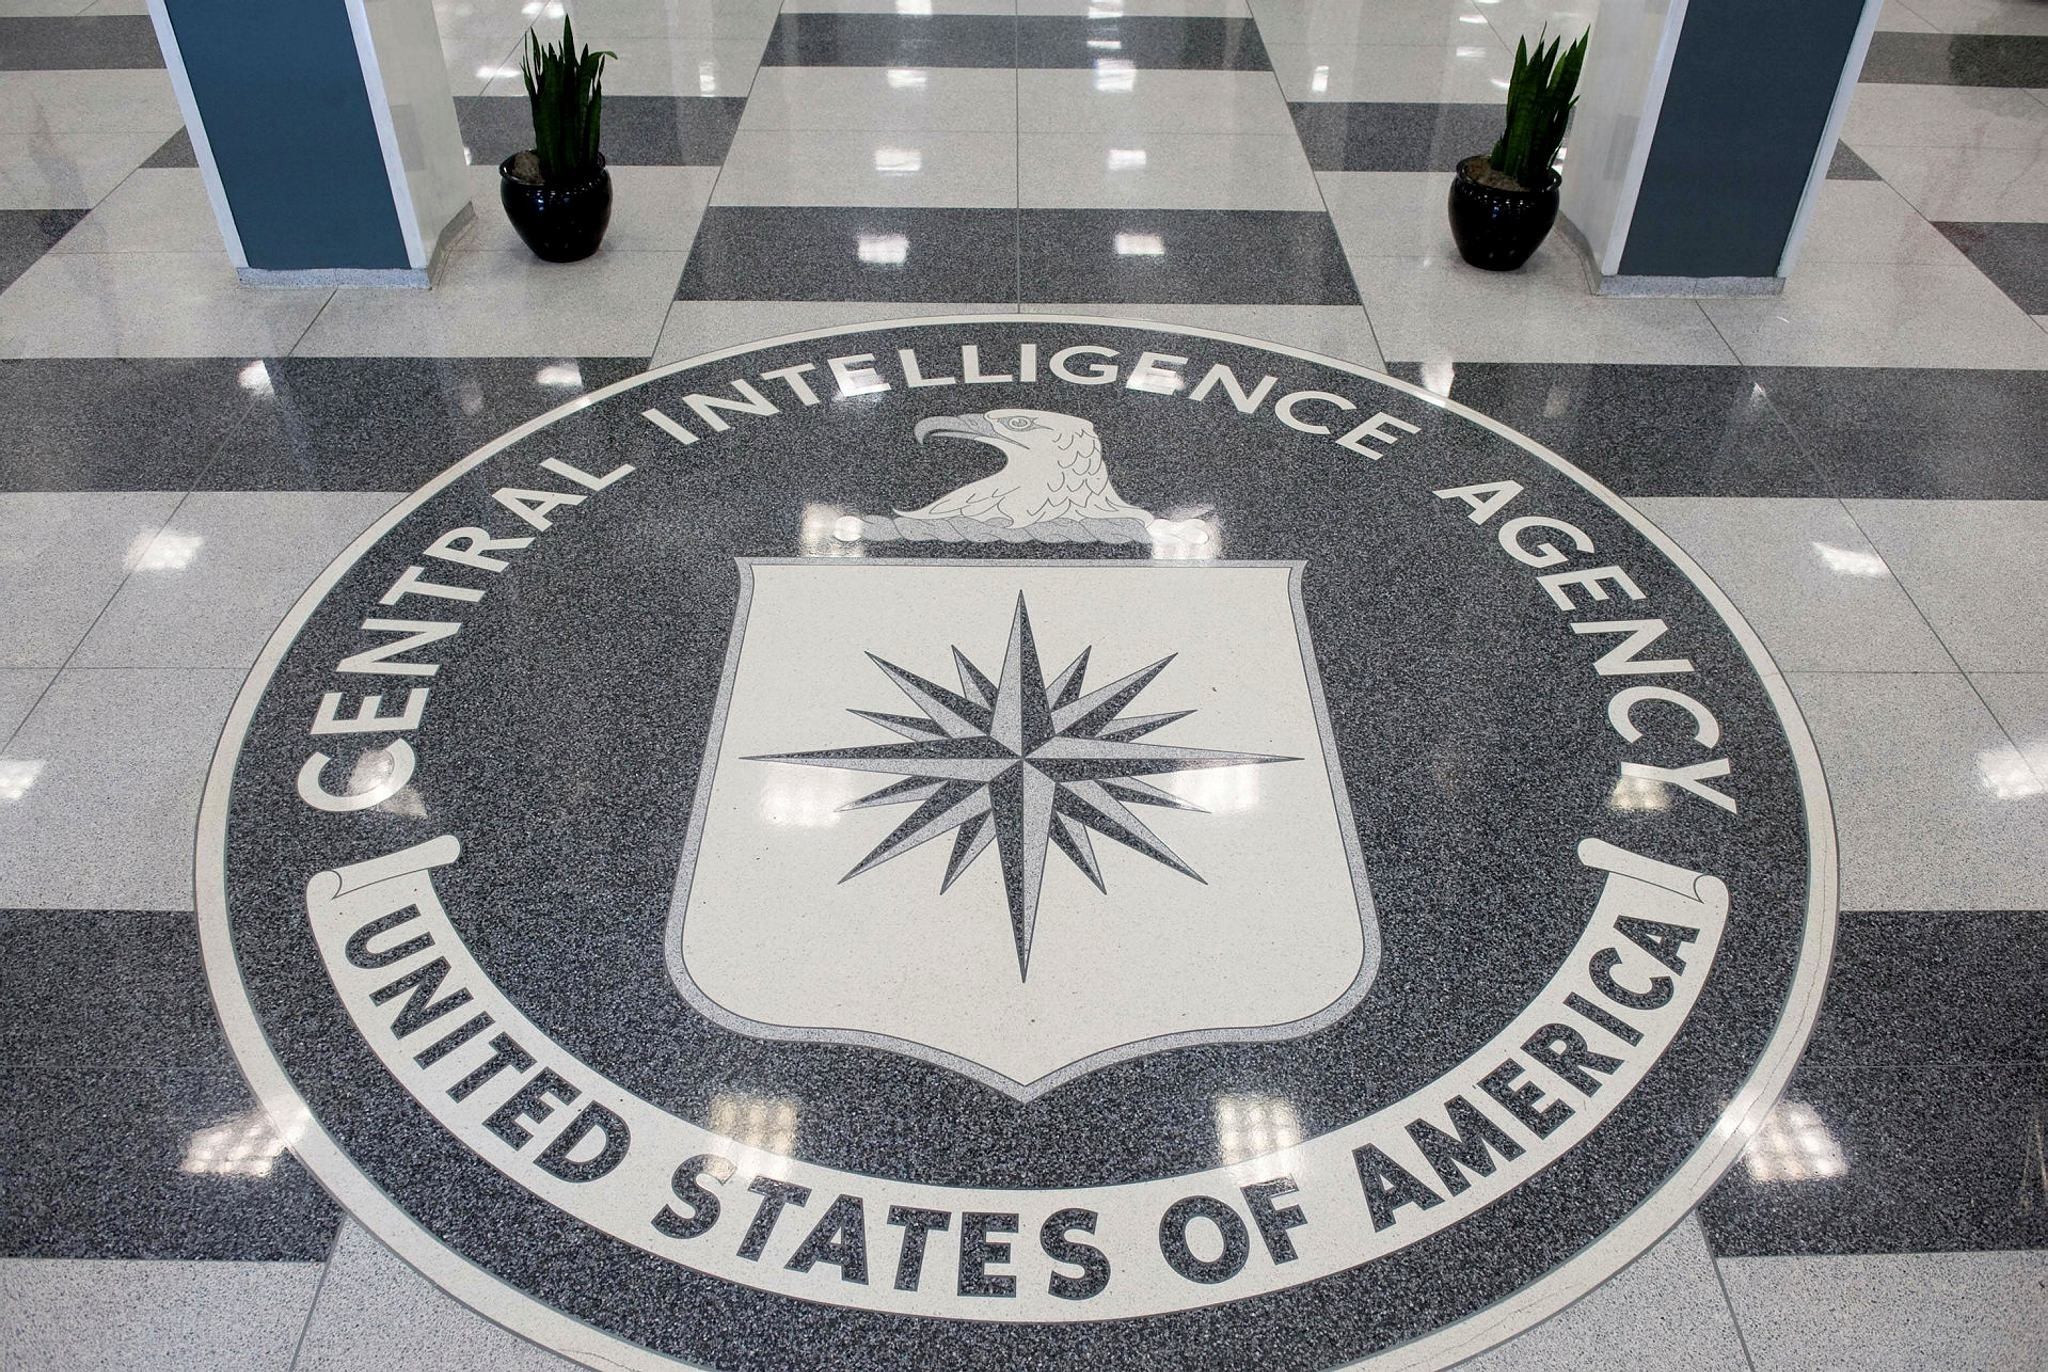 The seal of the Central Intelligence Agency (CIA) in the lobby of CIA Headquarters in Langley, Virginia.